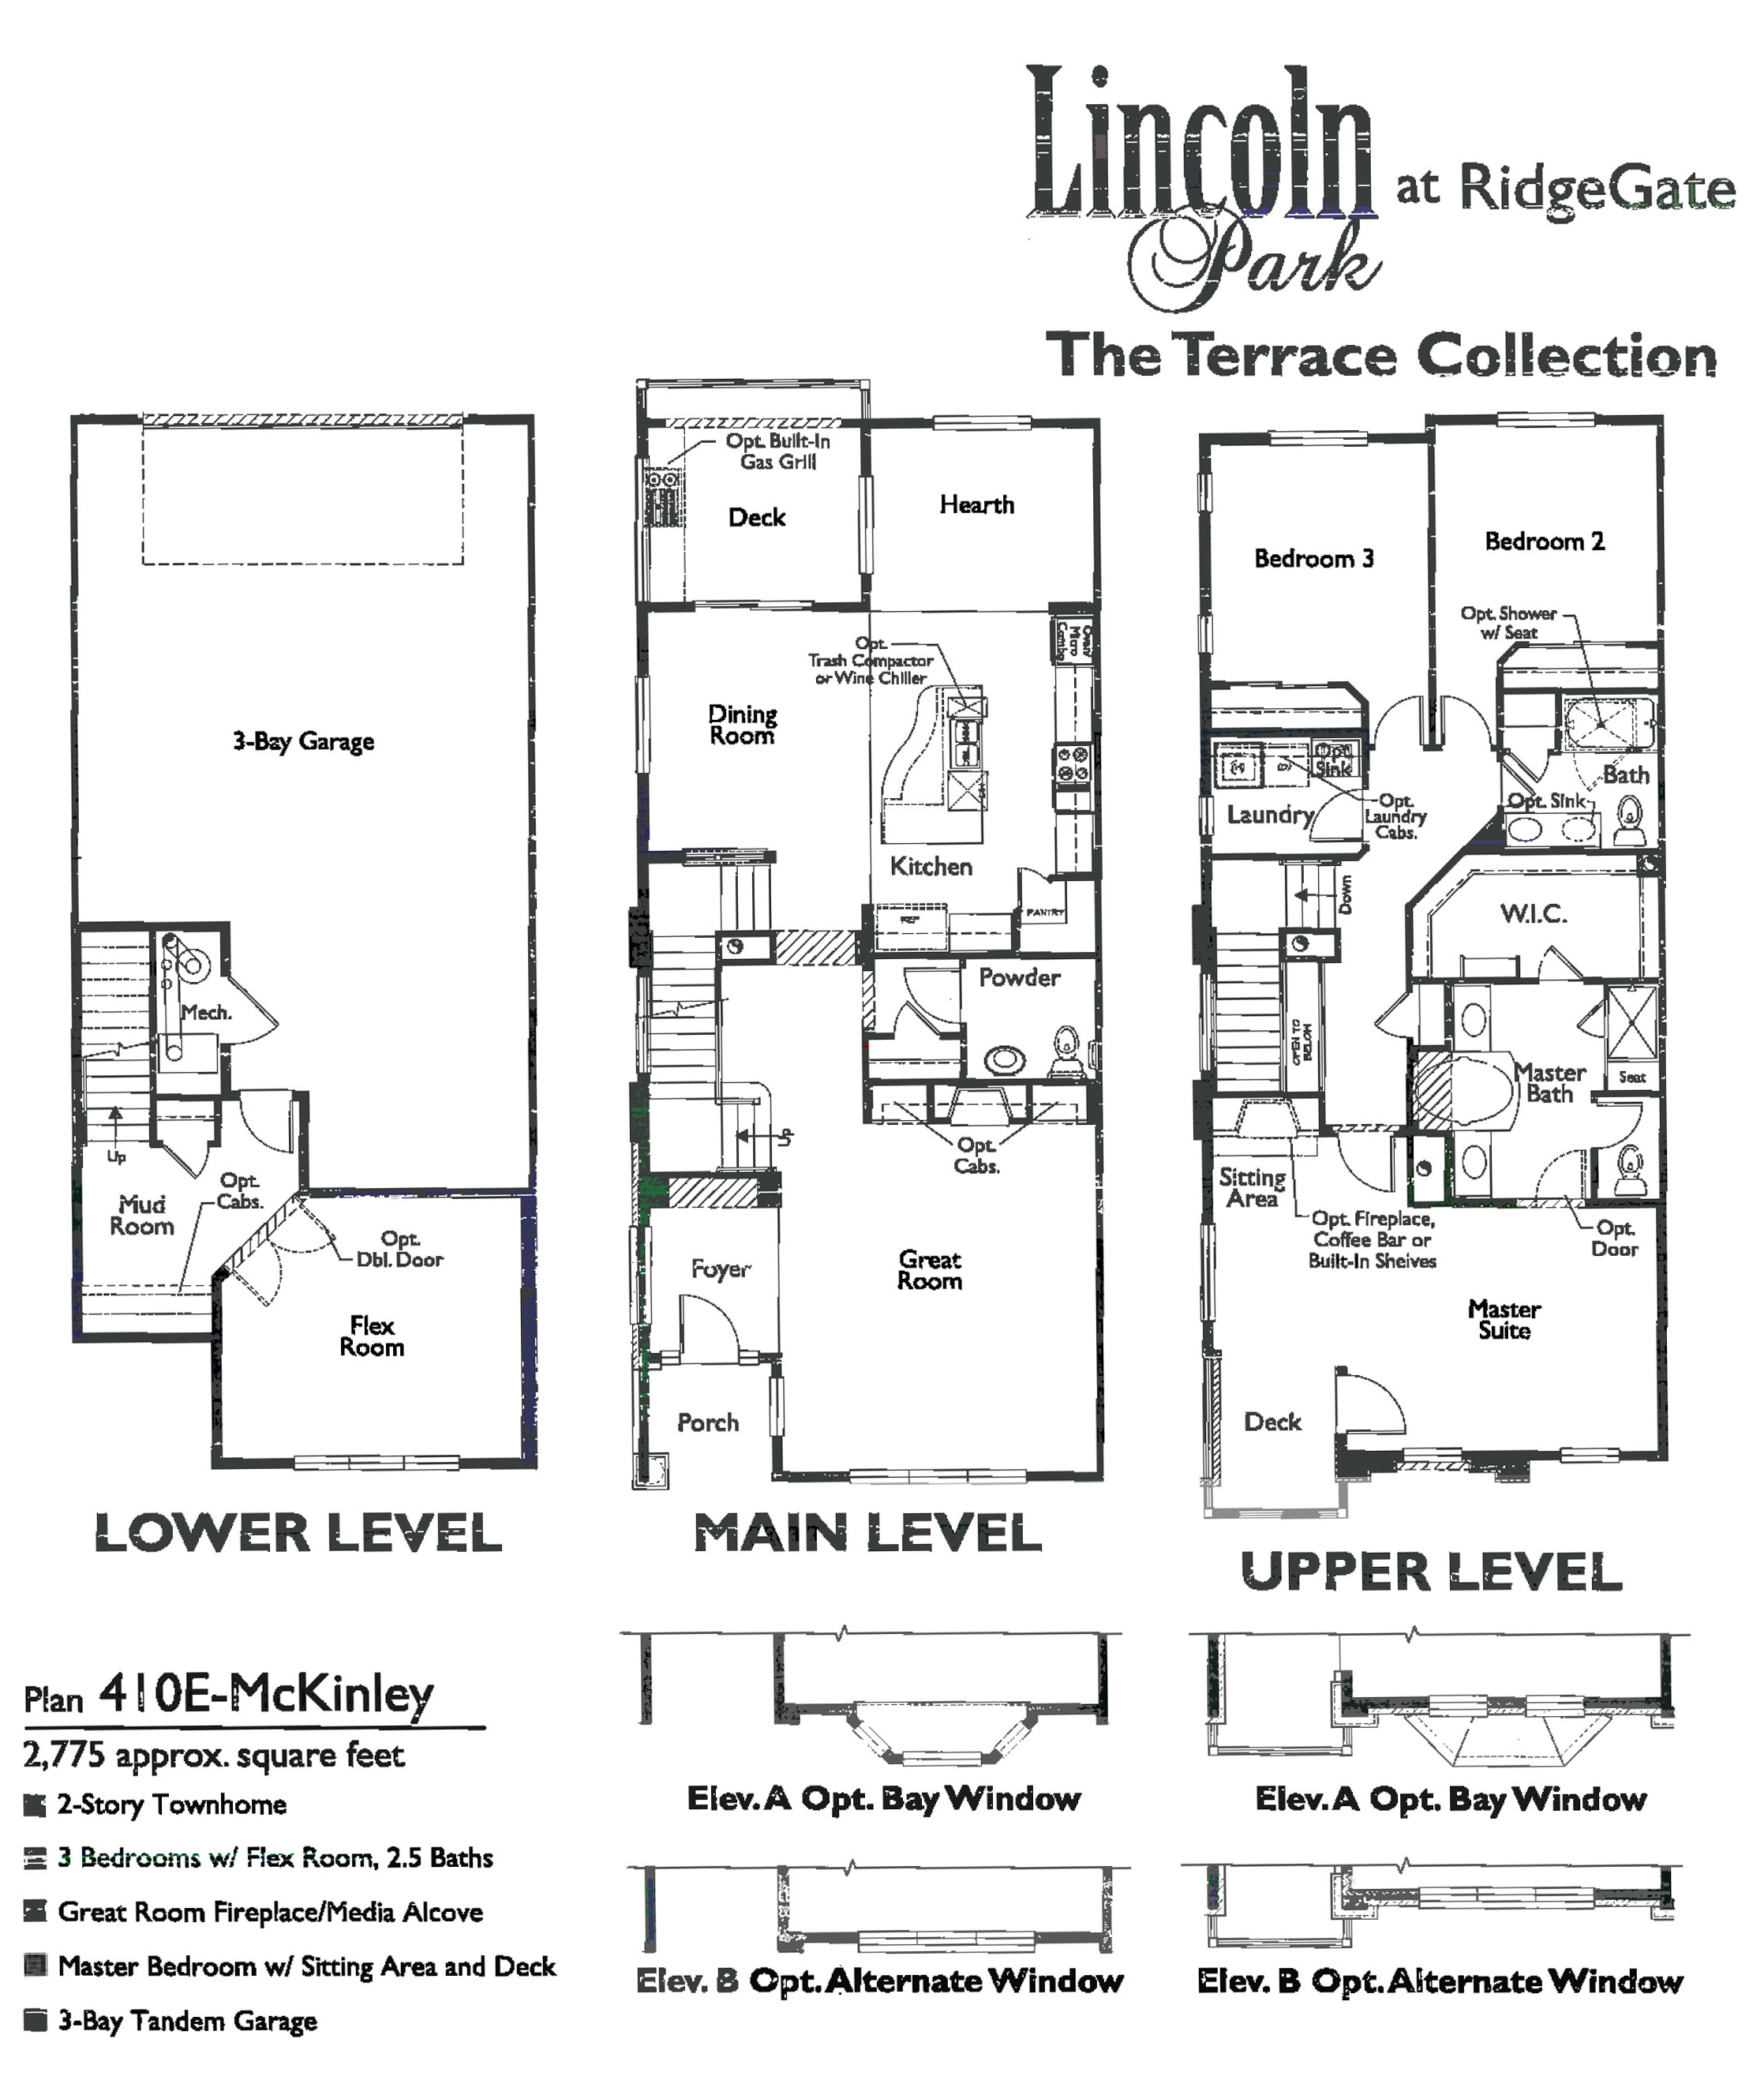 McKinley Floor Plan for Lincoln Park at RidgeGate in Lone Tree, CO